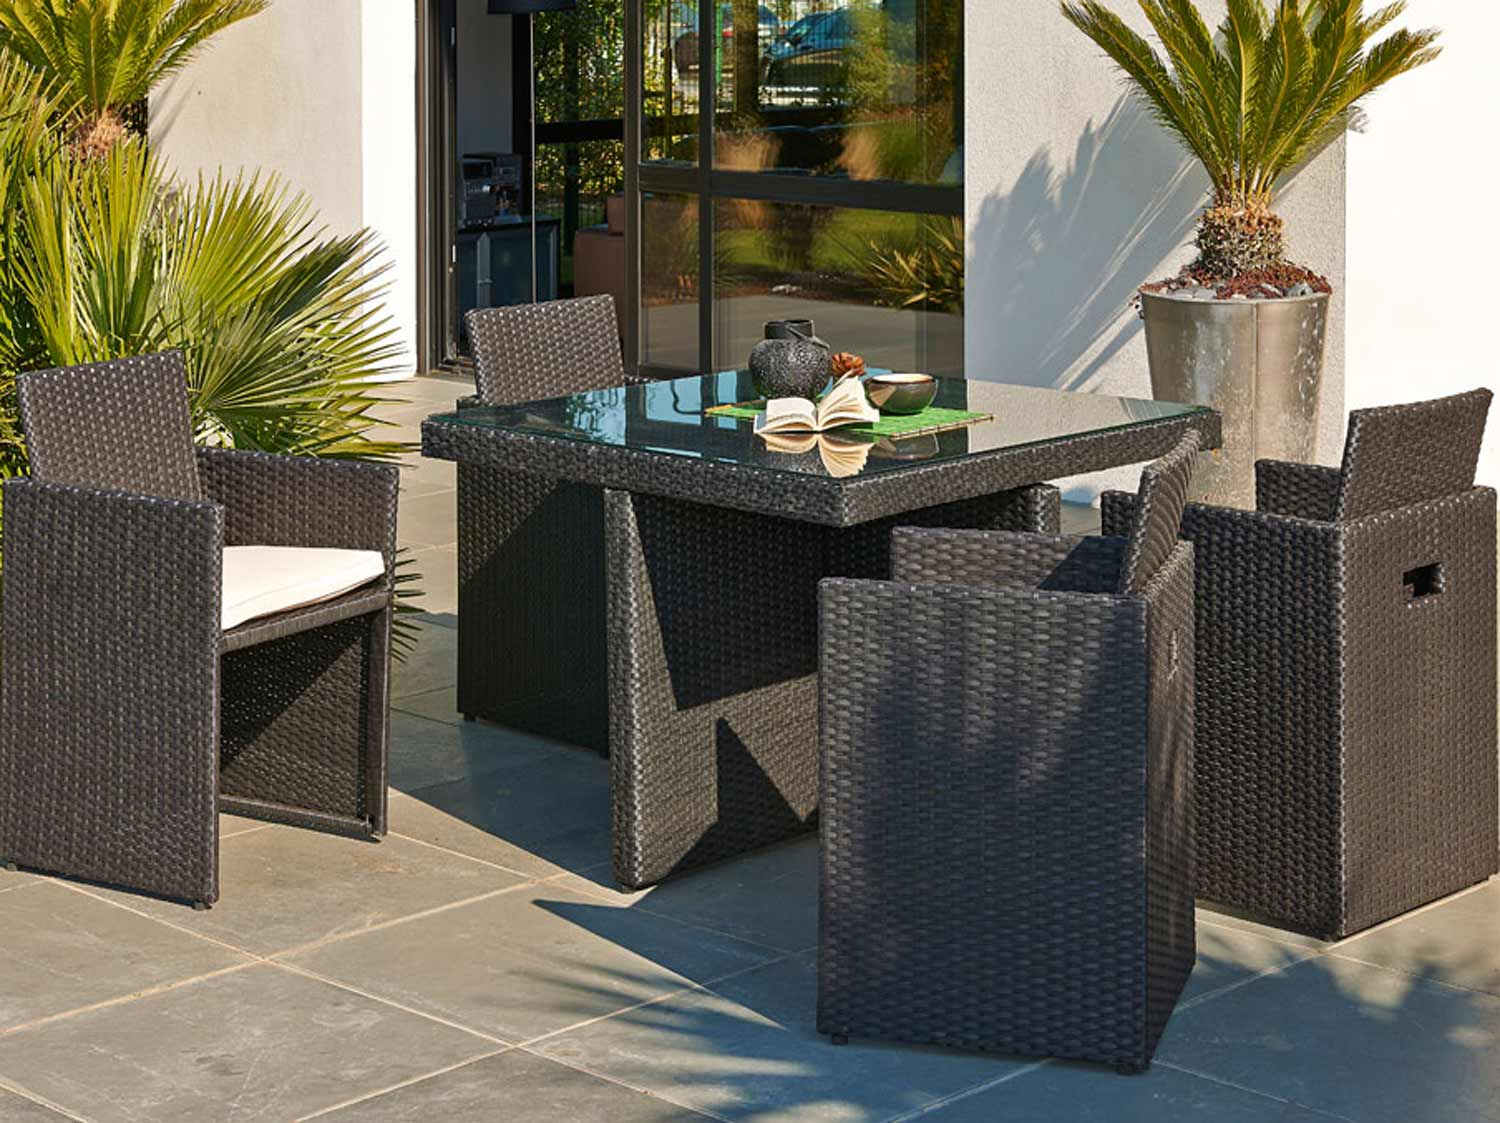 Salon de jardin table et chaise mobilier de jardin for Mobilier terrasse